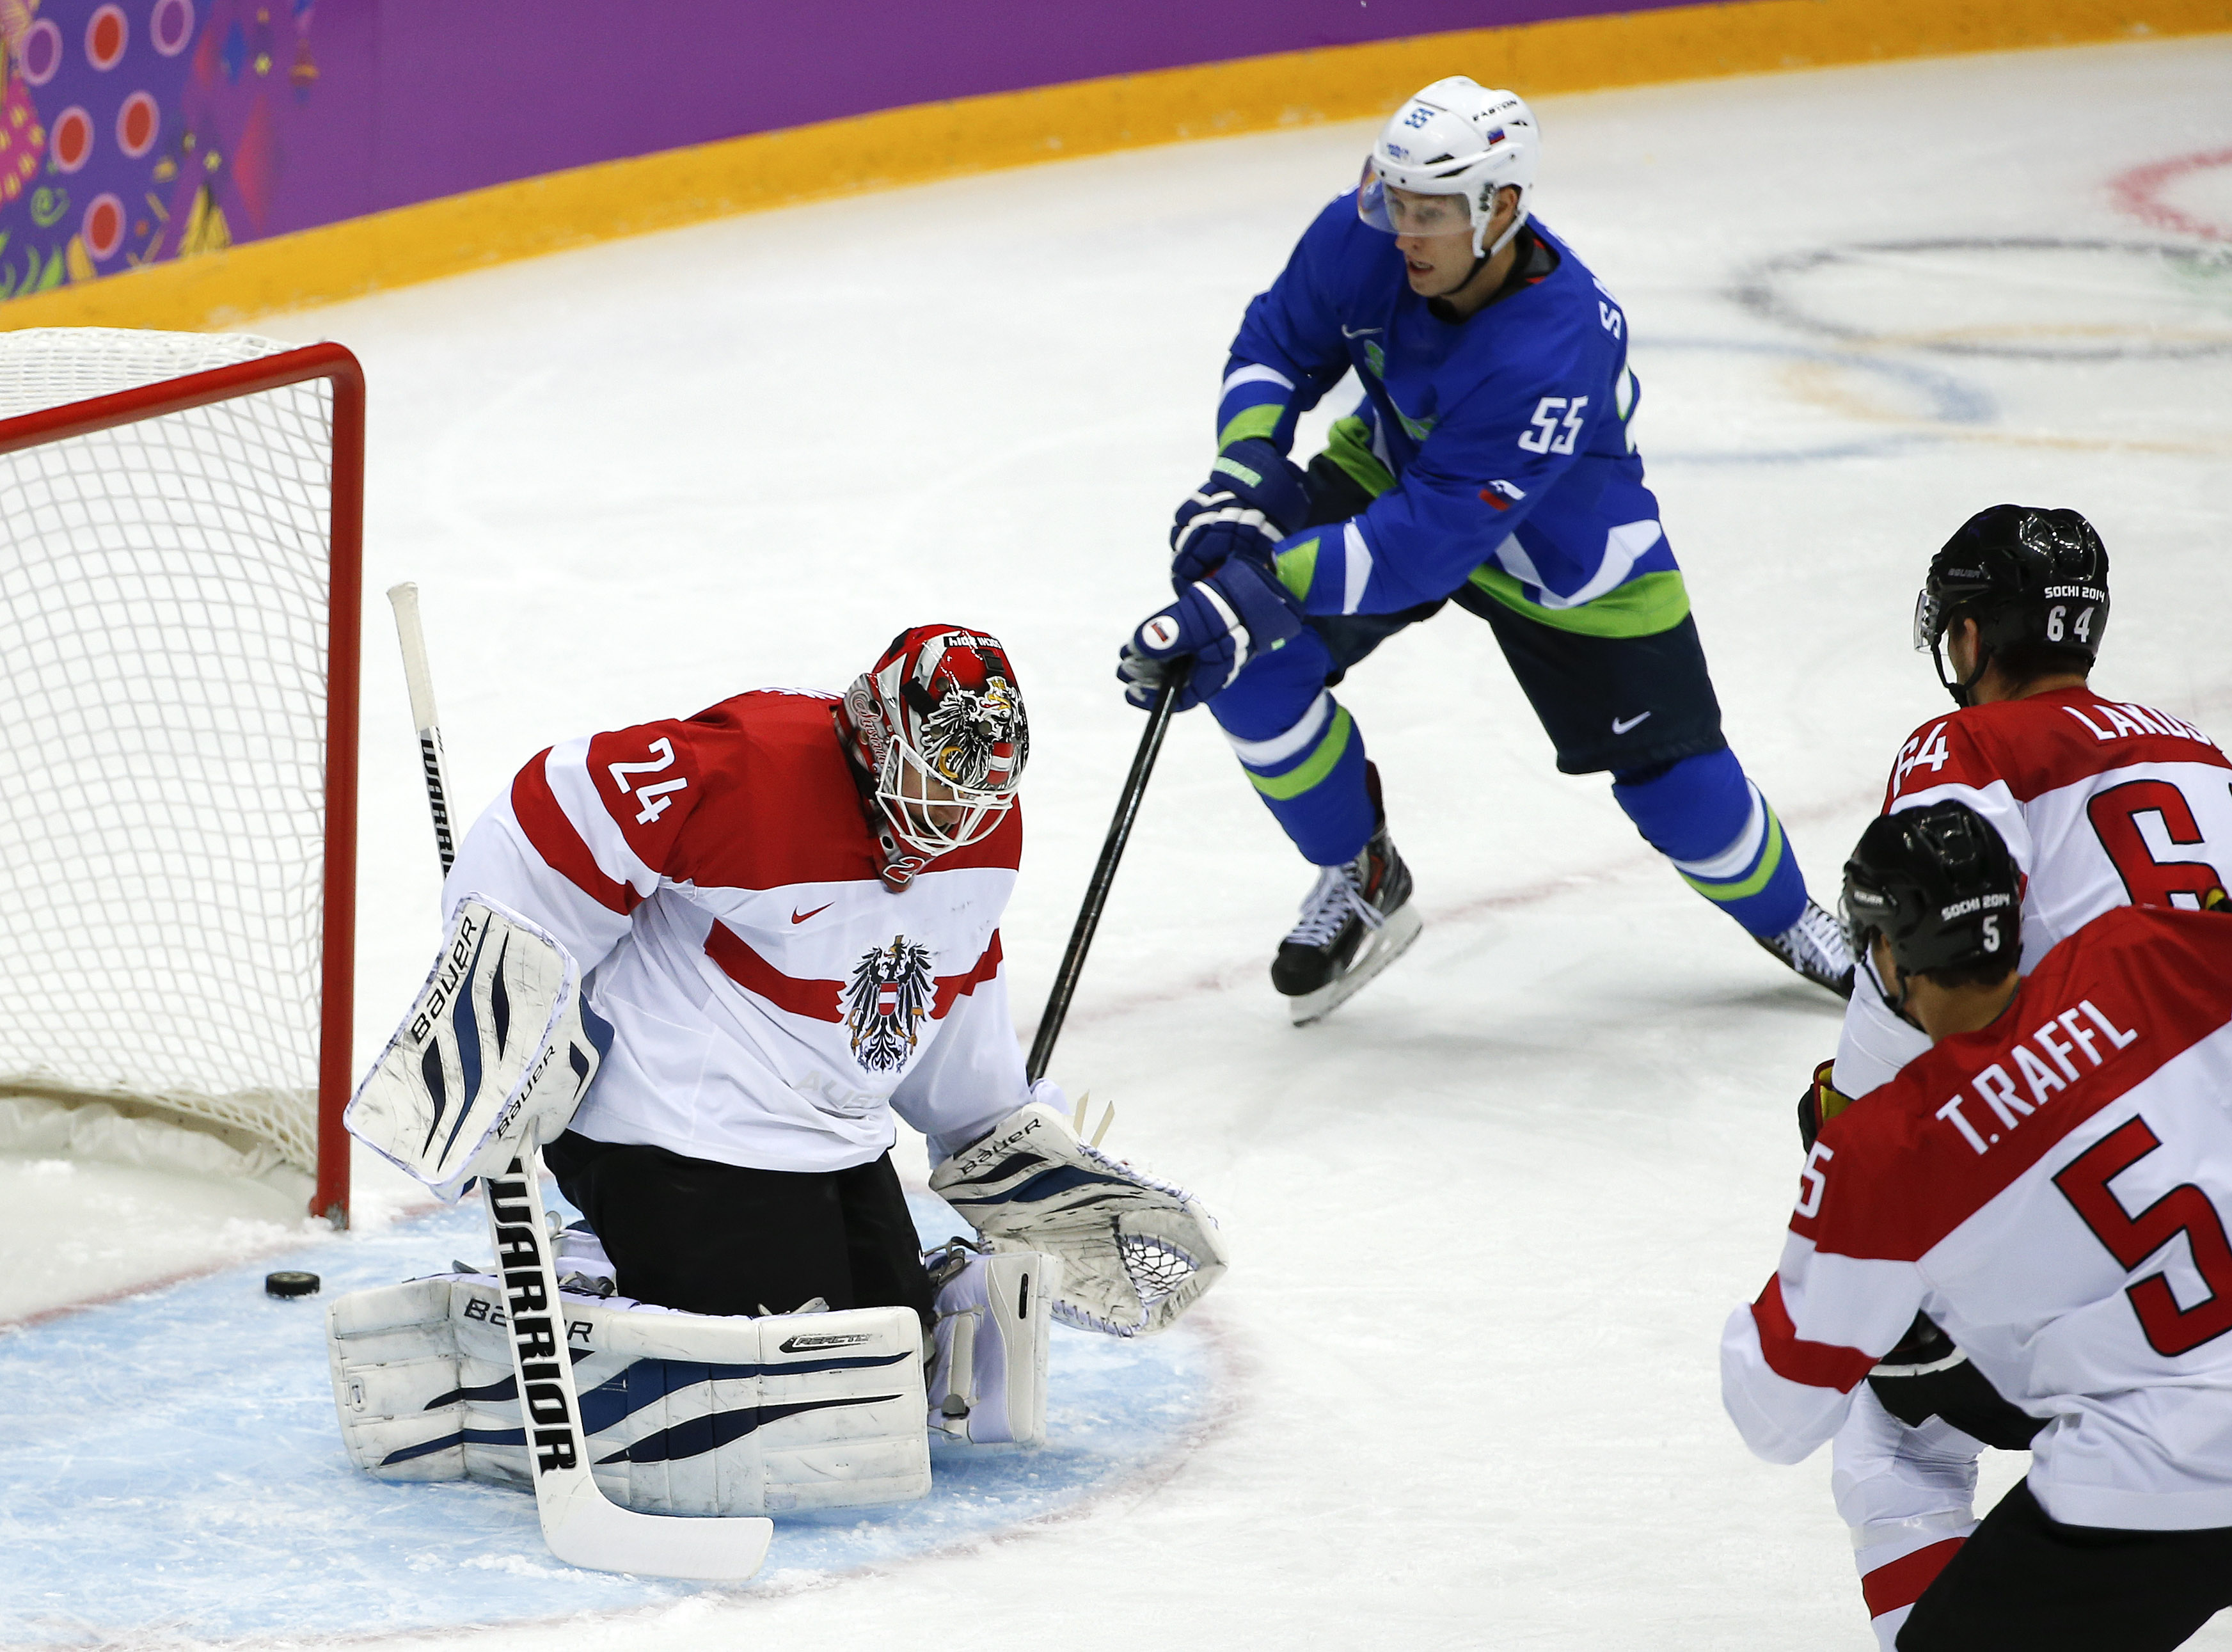 The puck, shot by Slovenia forward Anze Kopitar, slips past Austria goaltender Mathias Lange for a goal in the first period period of a men's ice hockey game at the 2014 Winter Olympics, Tuesday, Feb. 18, 2014, in Sochi, Russia. (AP Photo/Julio Cortez)